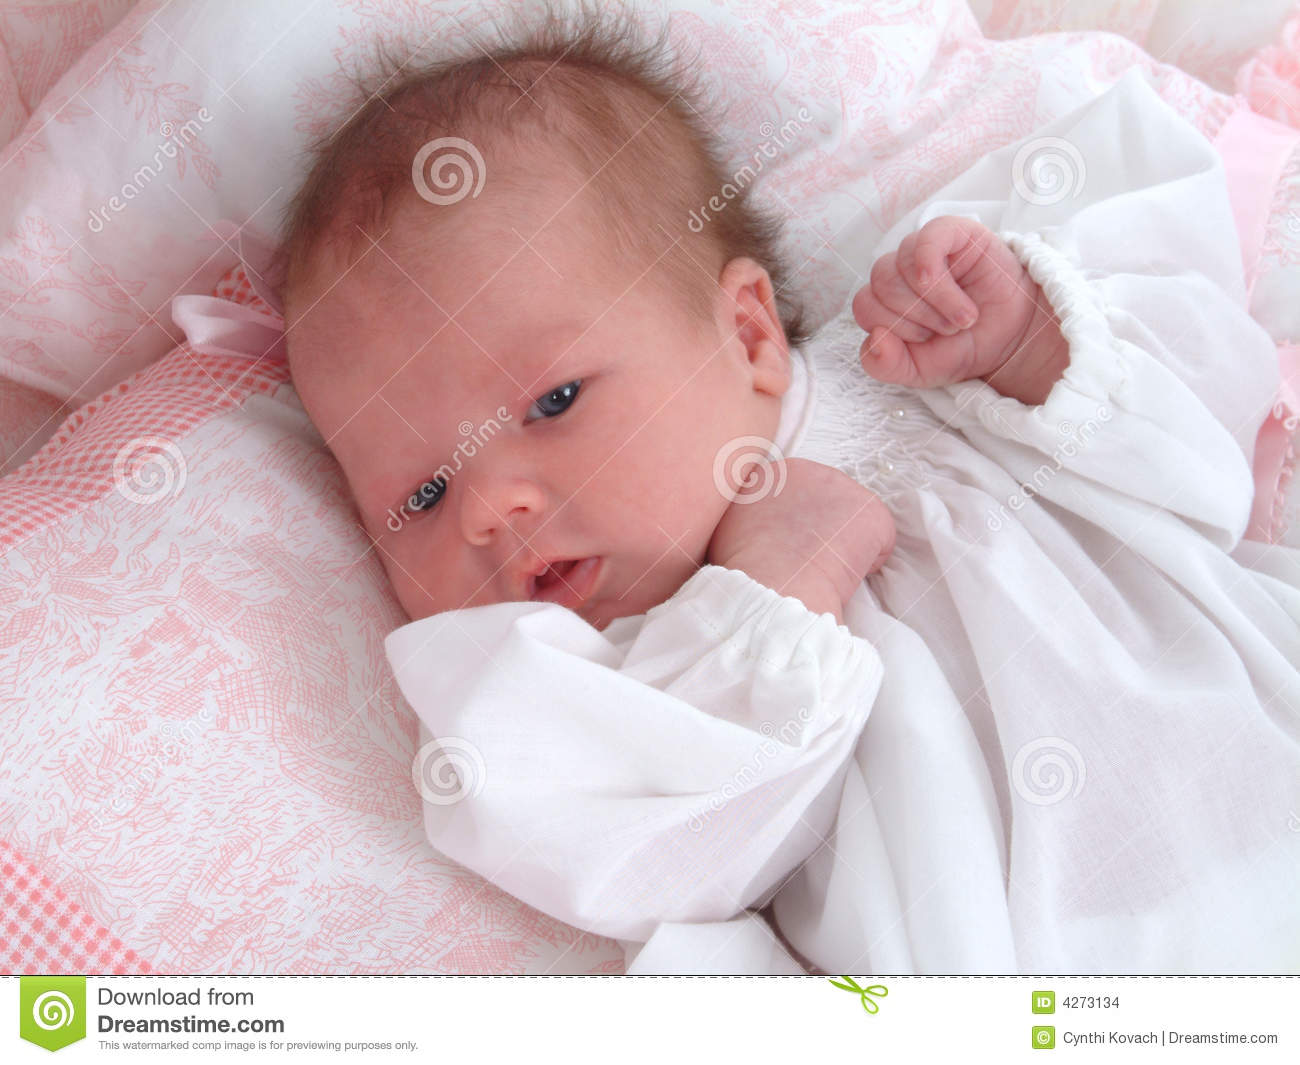 Baby girl stock photo. image of newborn gingham dress 4273134